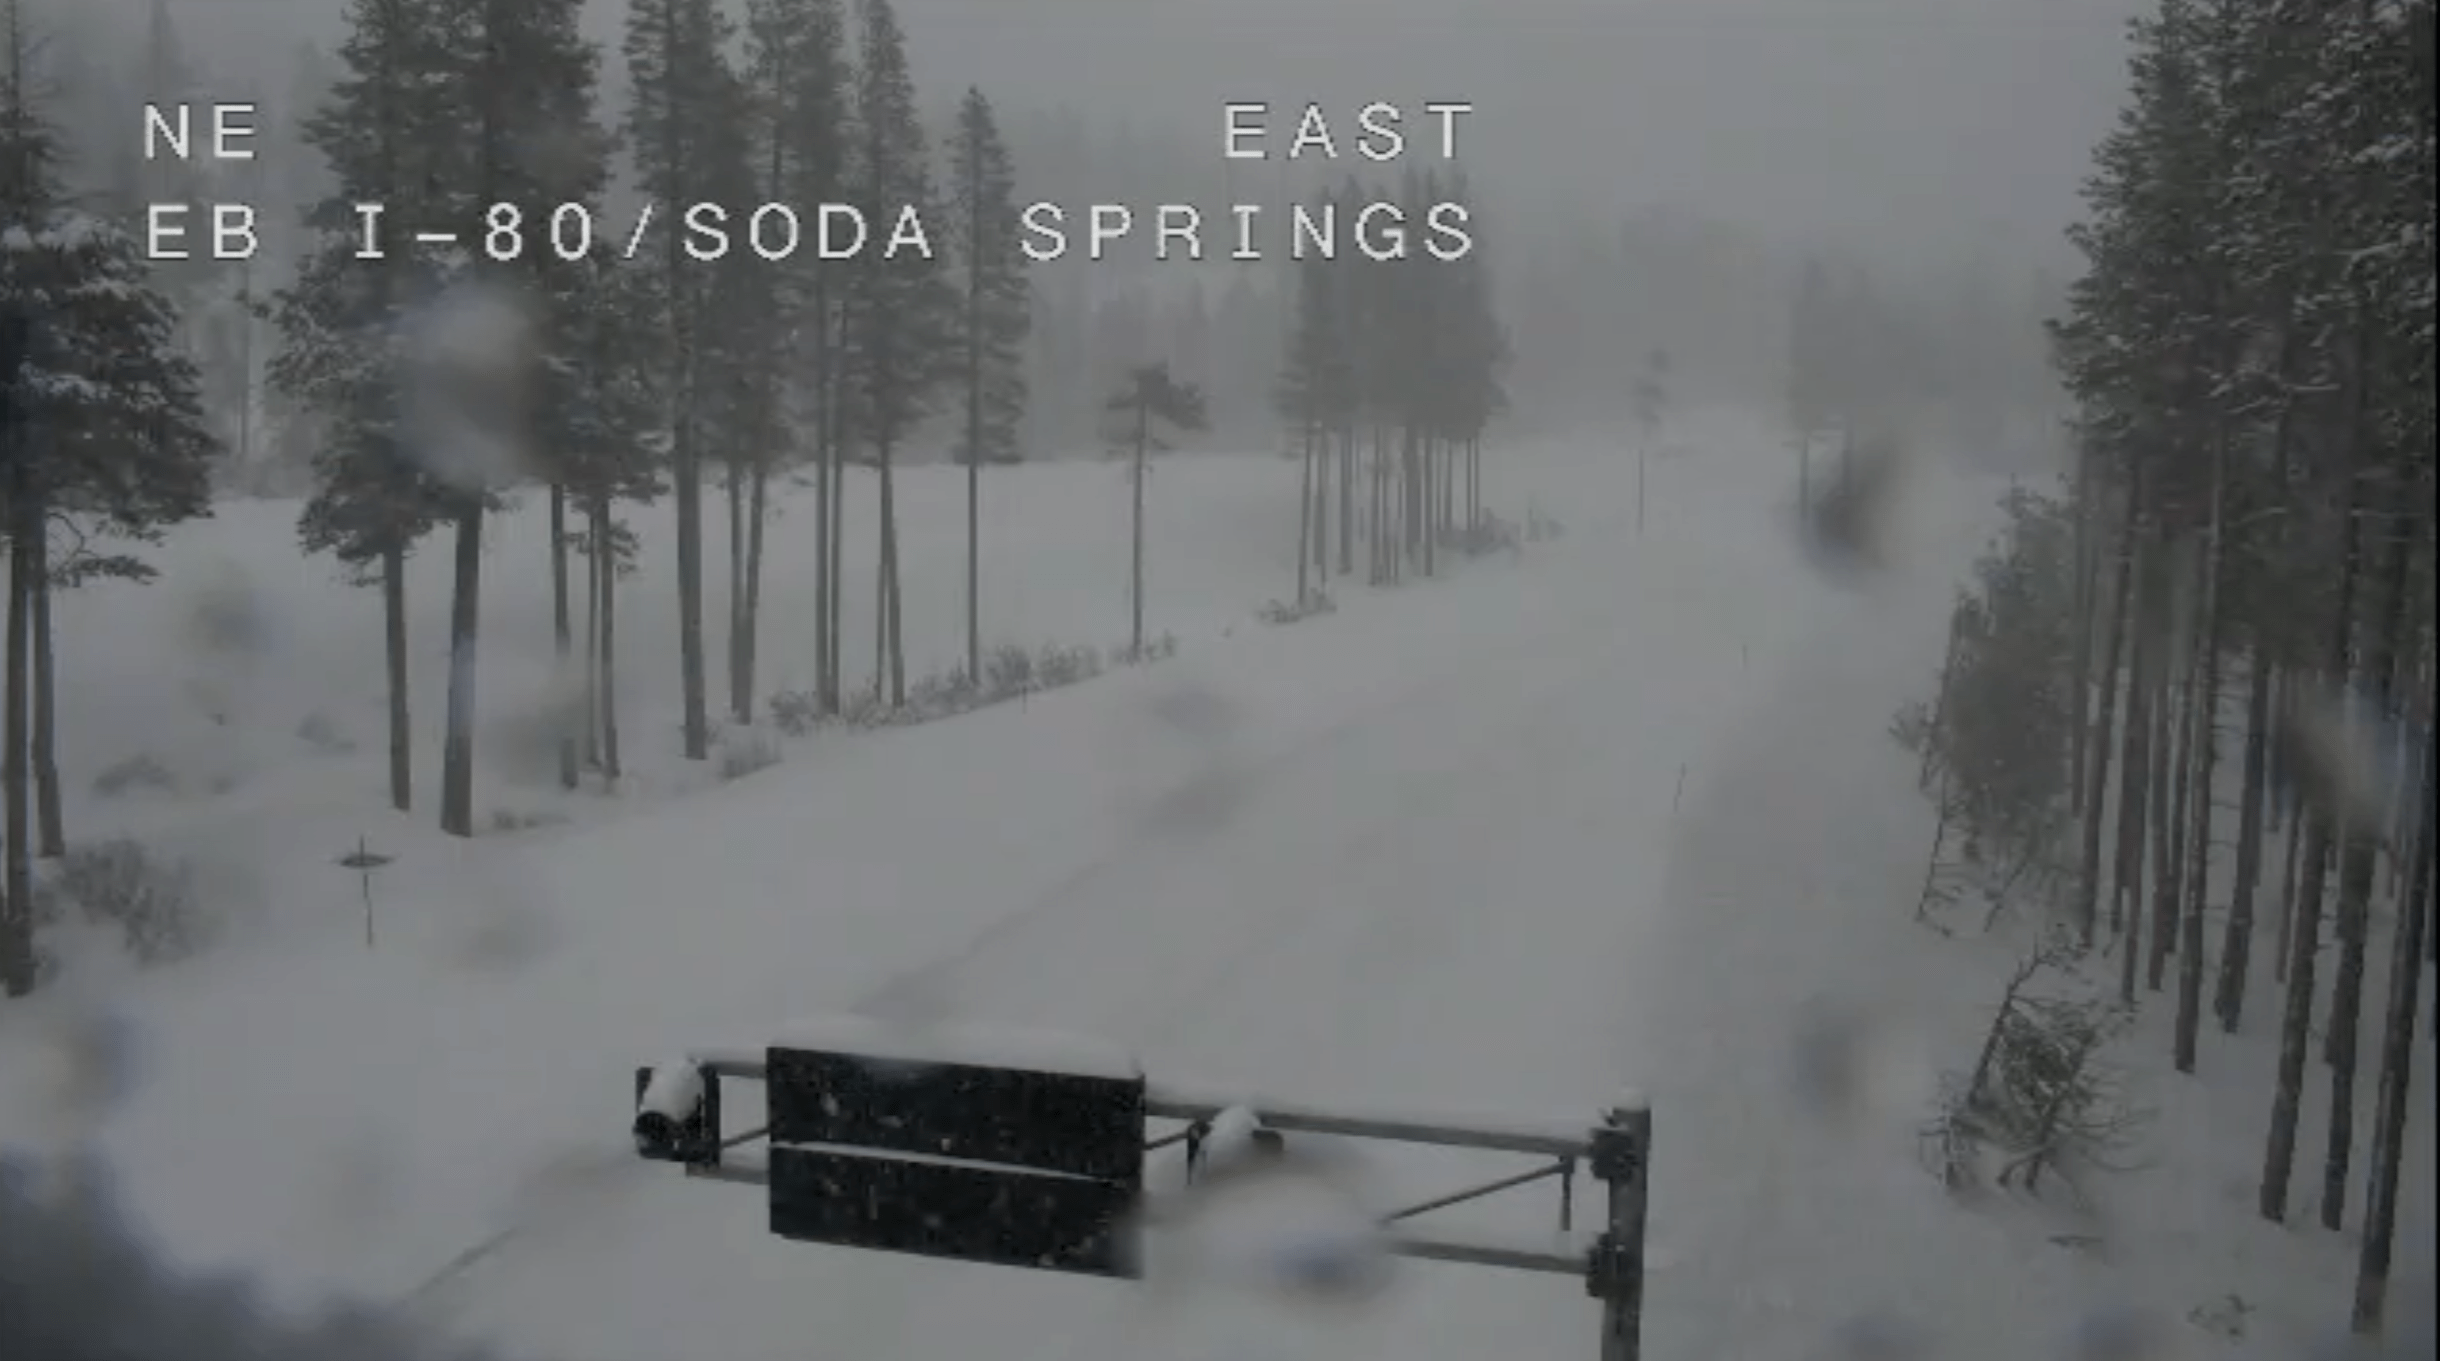 Massive snowfall closes I-80 in California | Watts Up With That?